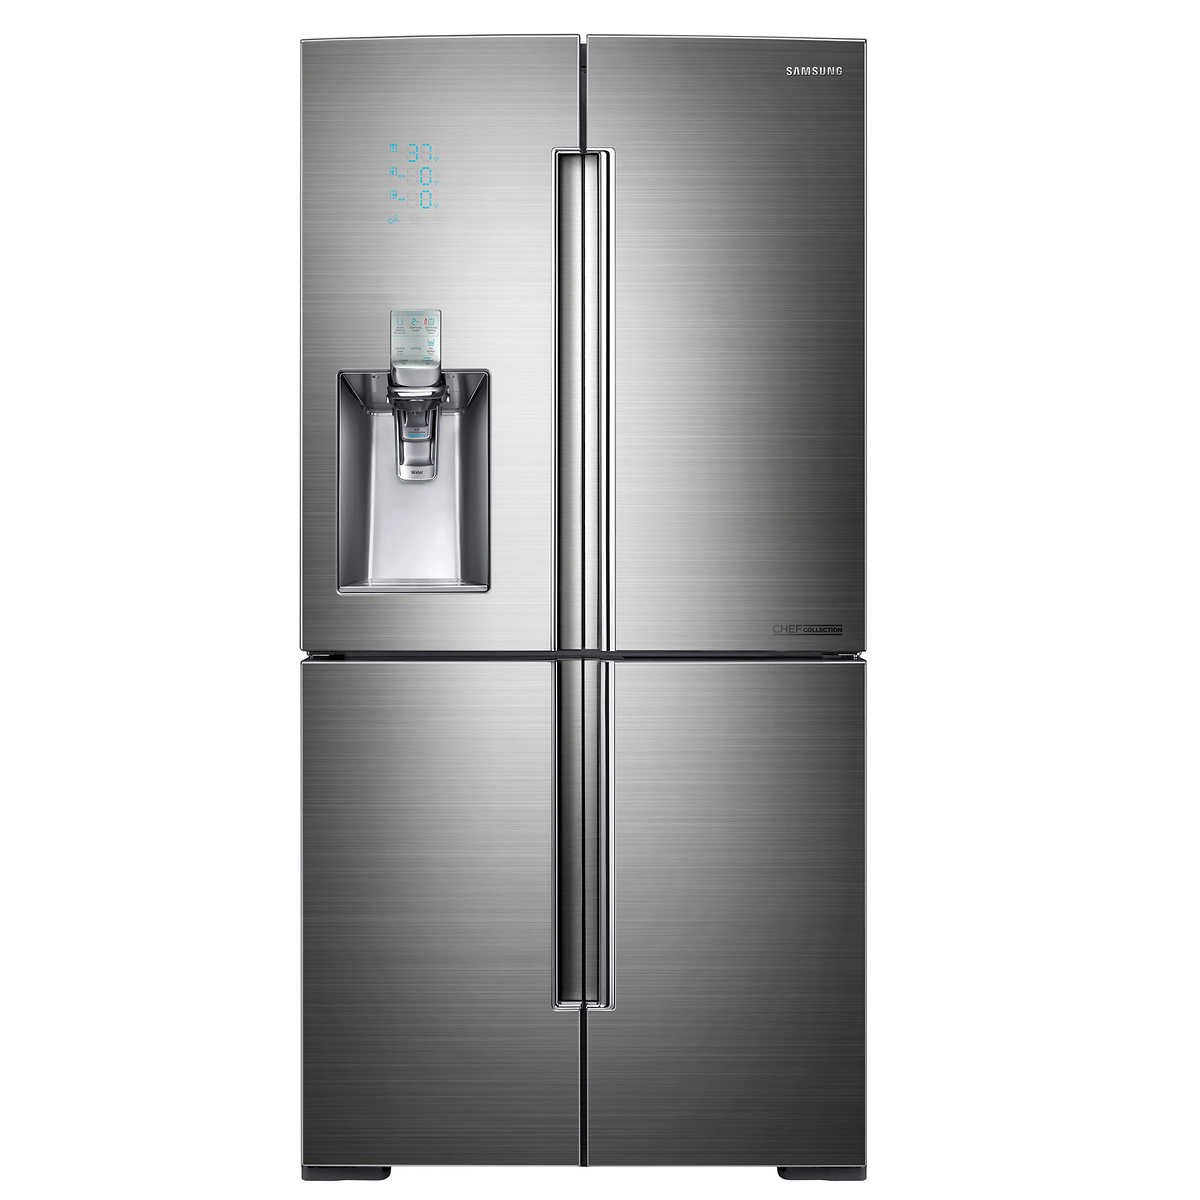 Uncategorized Kitchen Appliances Calgary refrigerators costco samsung chef collection 33 1 cu ft 4 door french refrigerator with